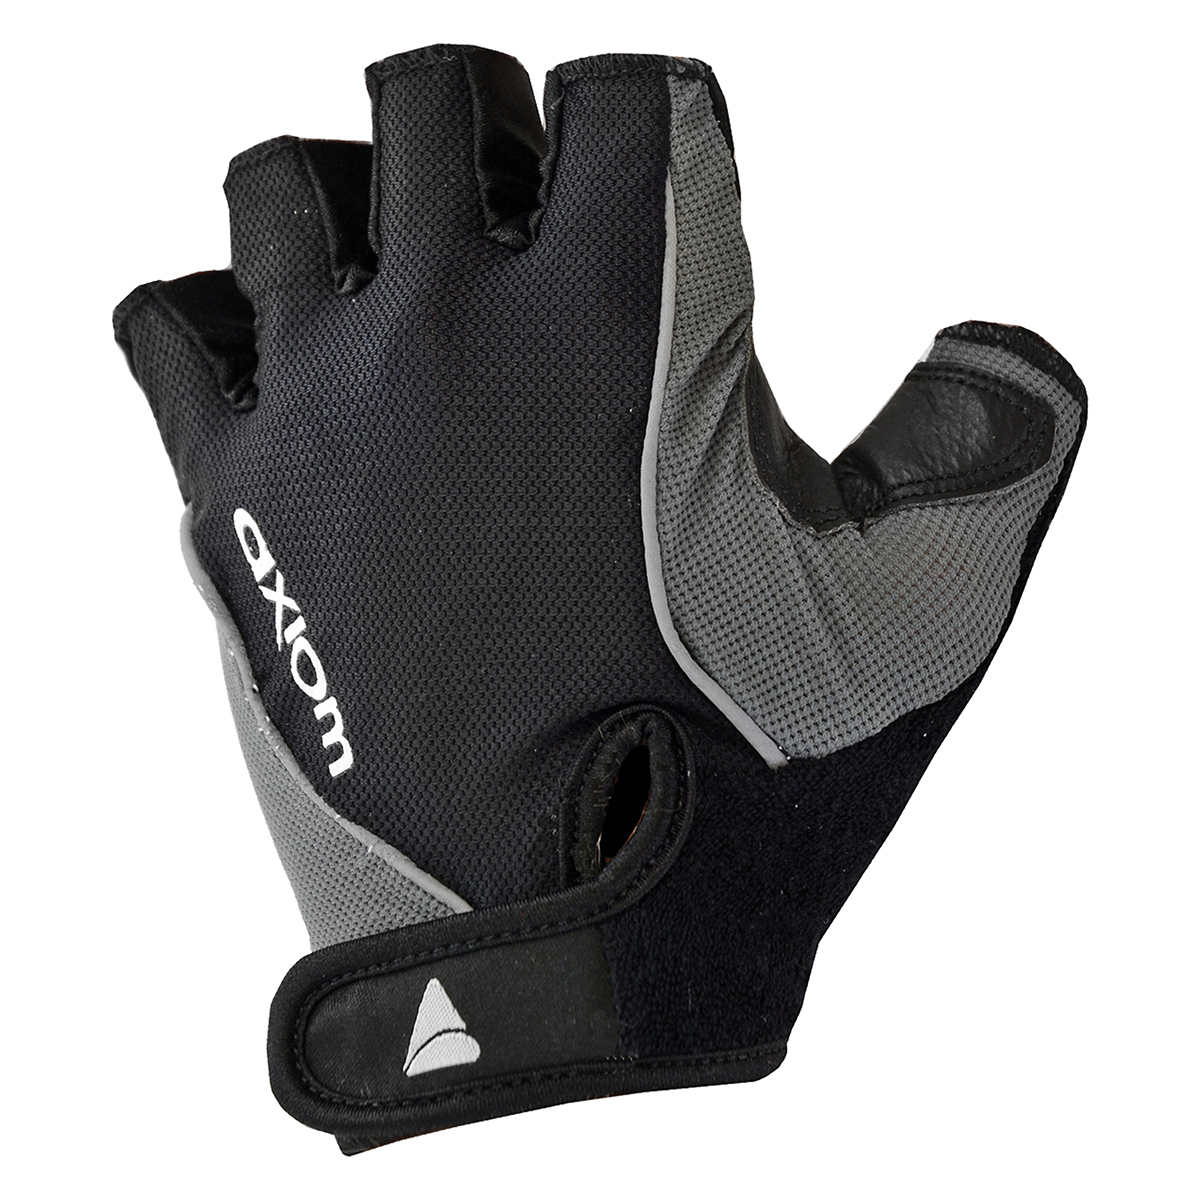 Axiom Zone DLX Men's Gloves Medium Black/Charcoal